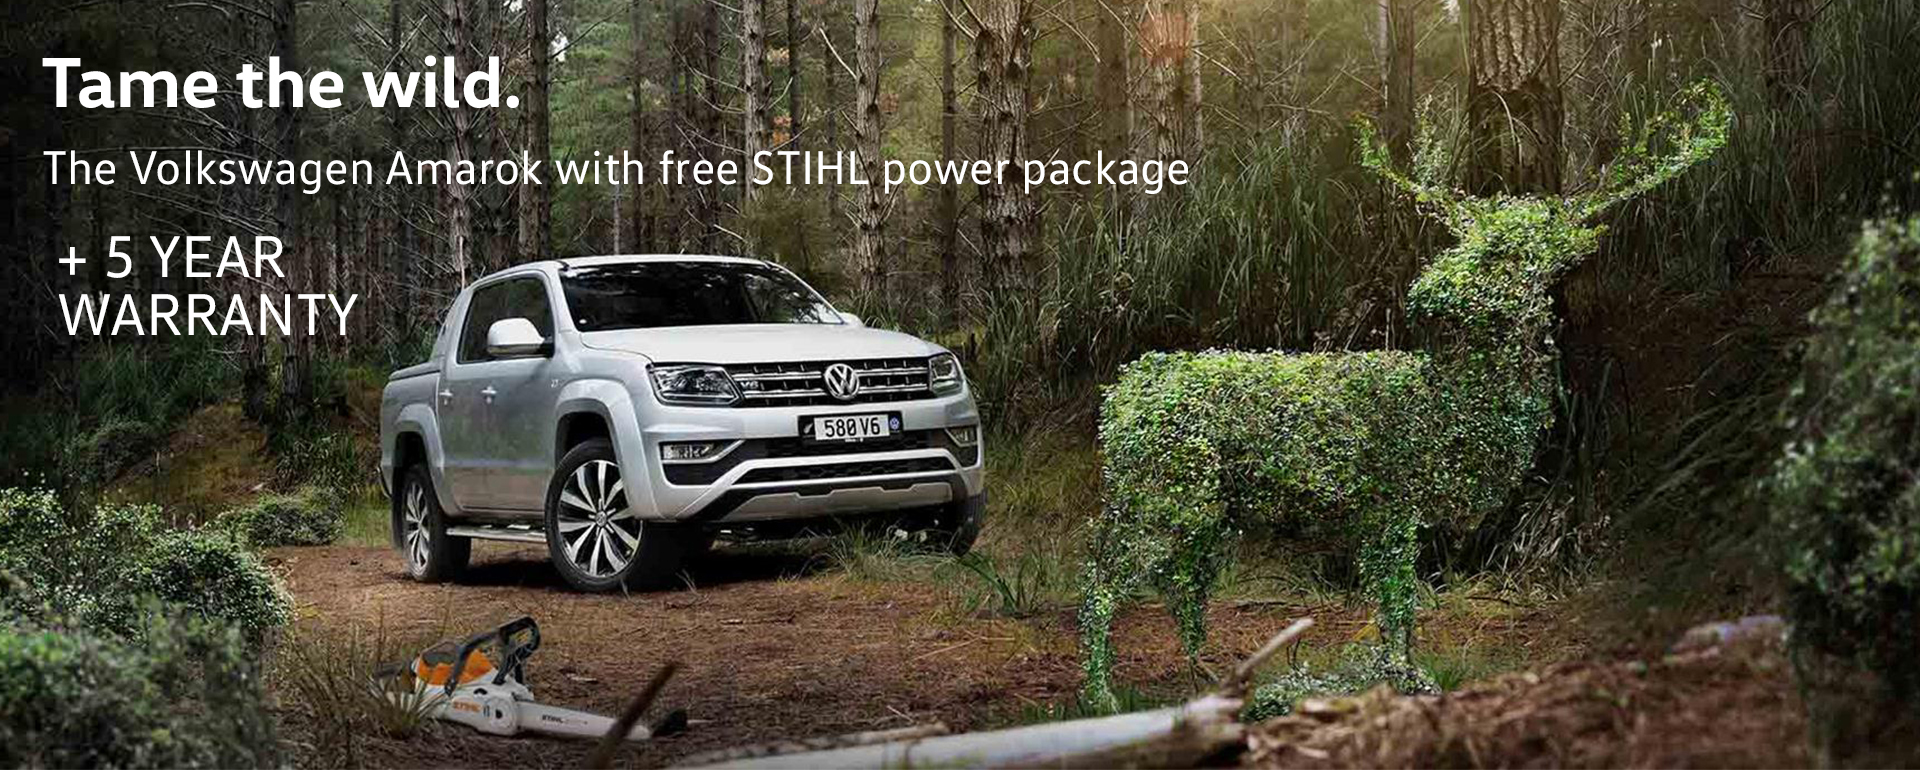 VW Stihl Offer